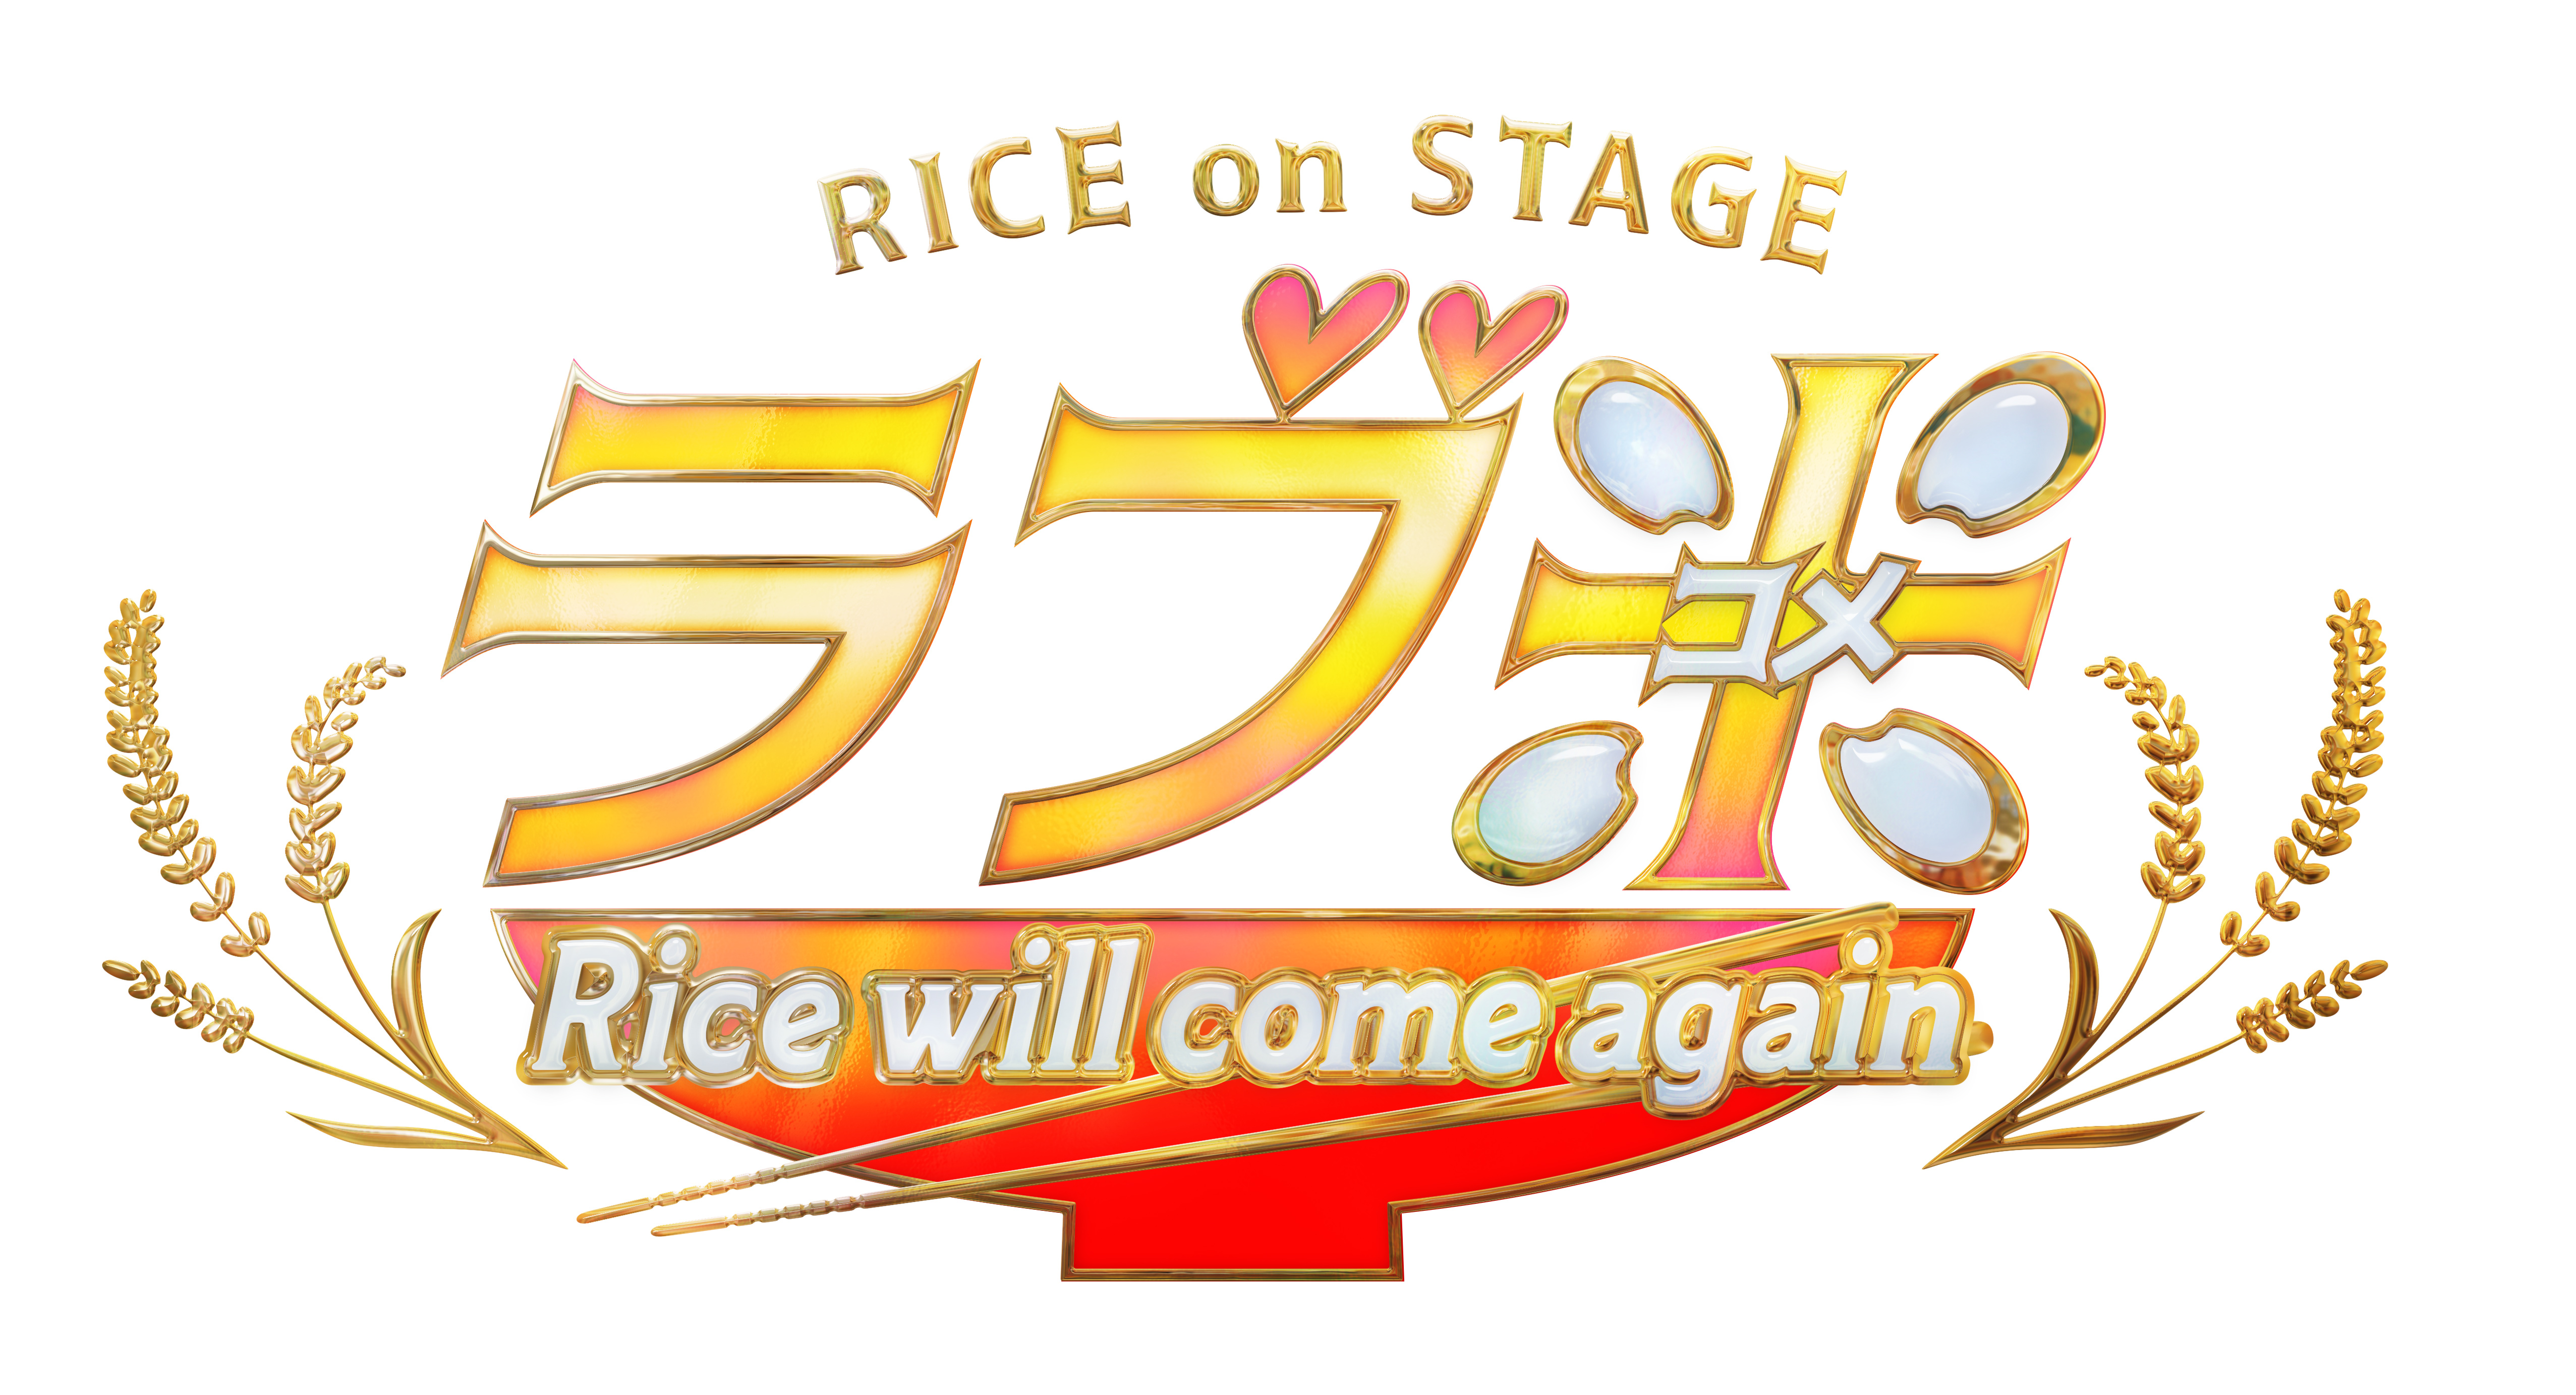 RICE on STAGE「ラブ米」~Rice will come again~